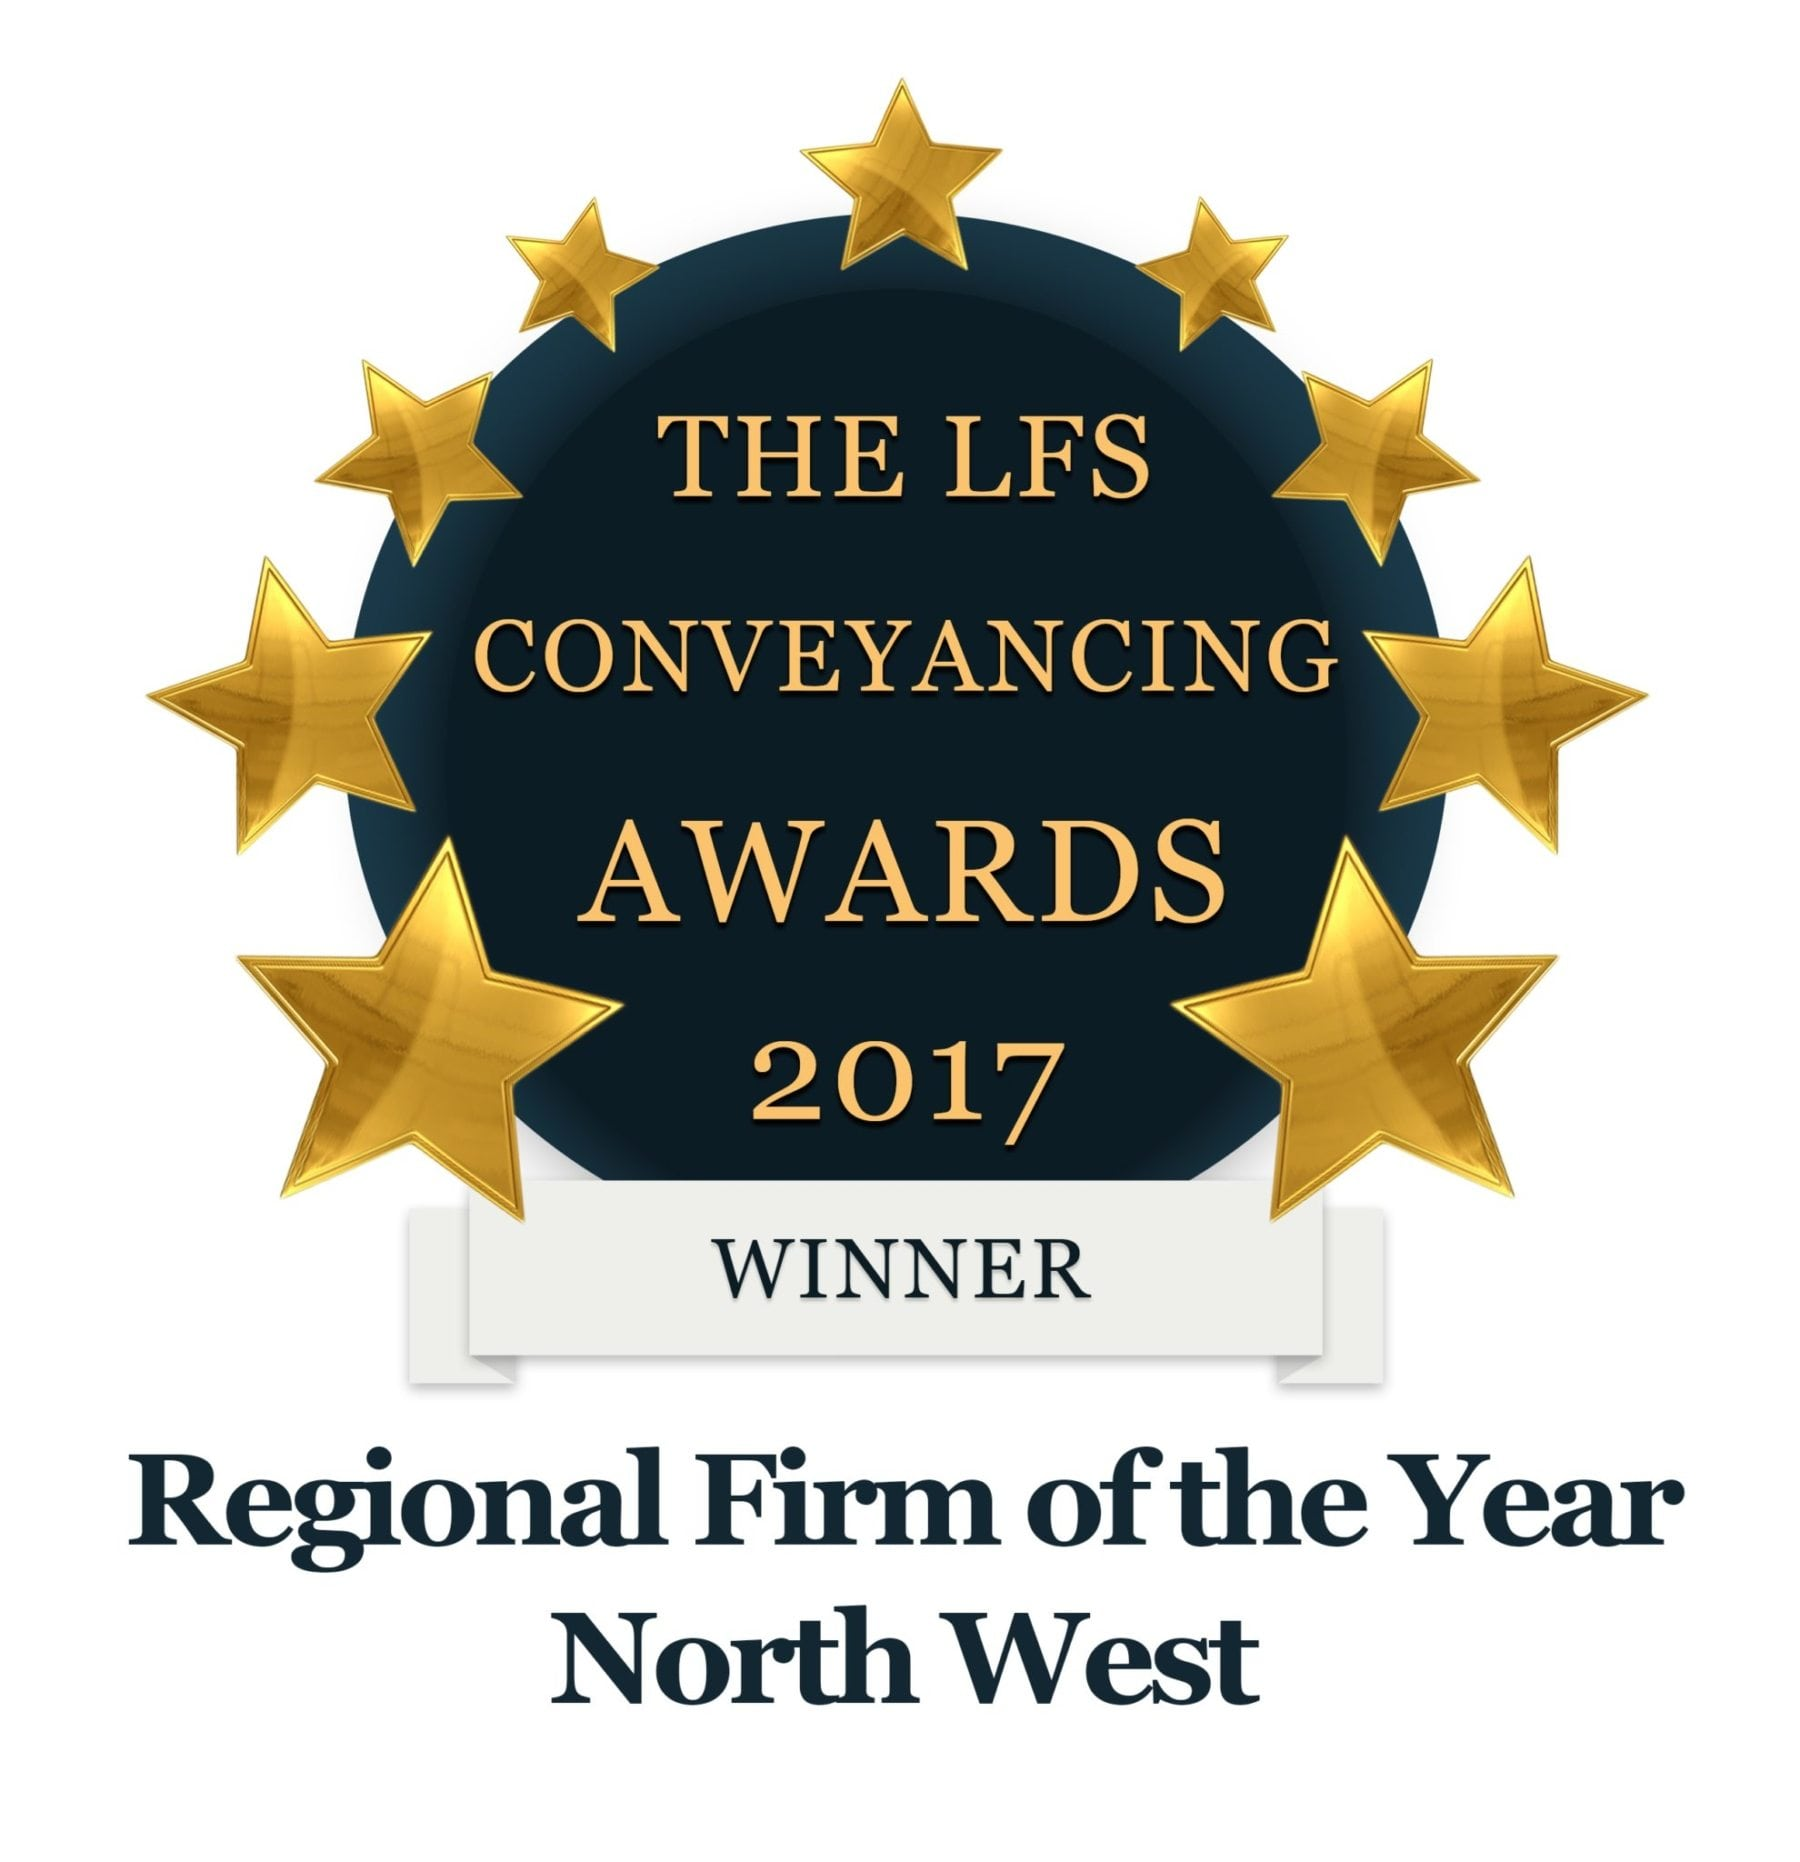 Residential property solicitors conveyancing solicitors preston napthens was delighted when the residential property team won the 2017 lfs regional conveyancing firm of the year award the second time the firm has won solutioingenieria Gallery